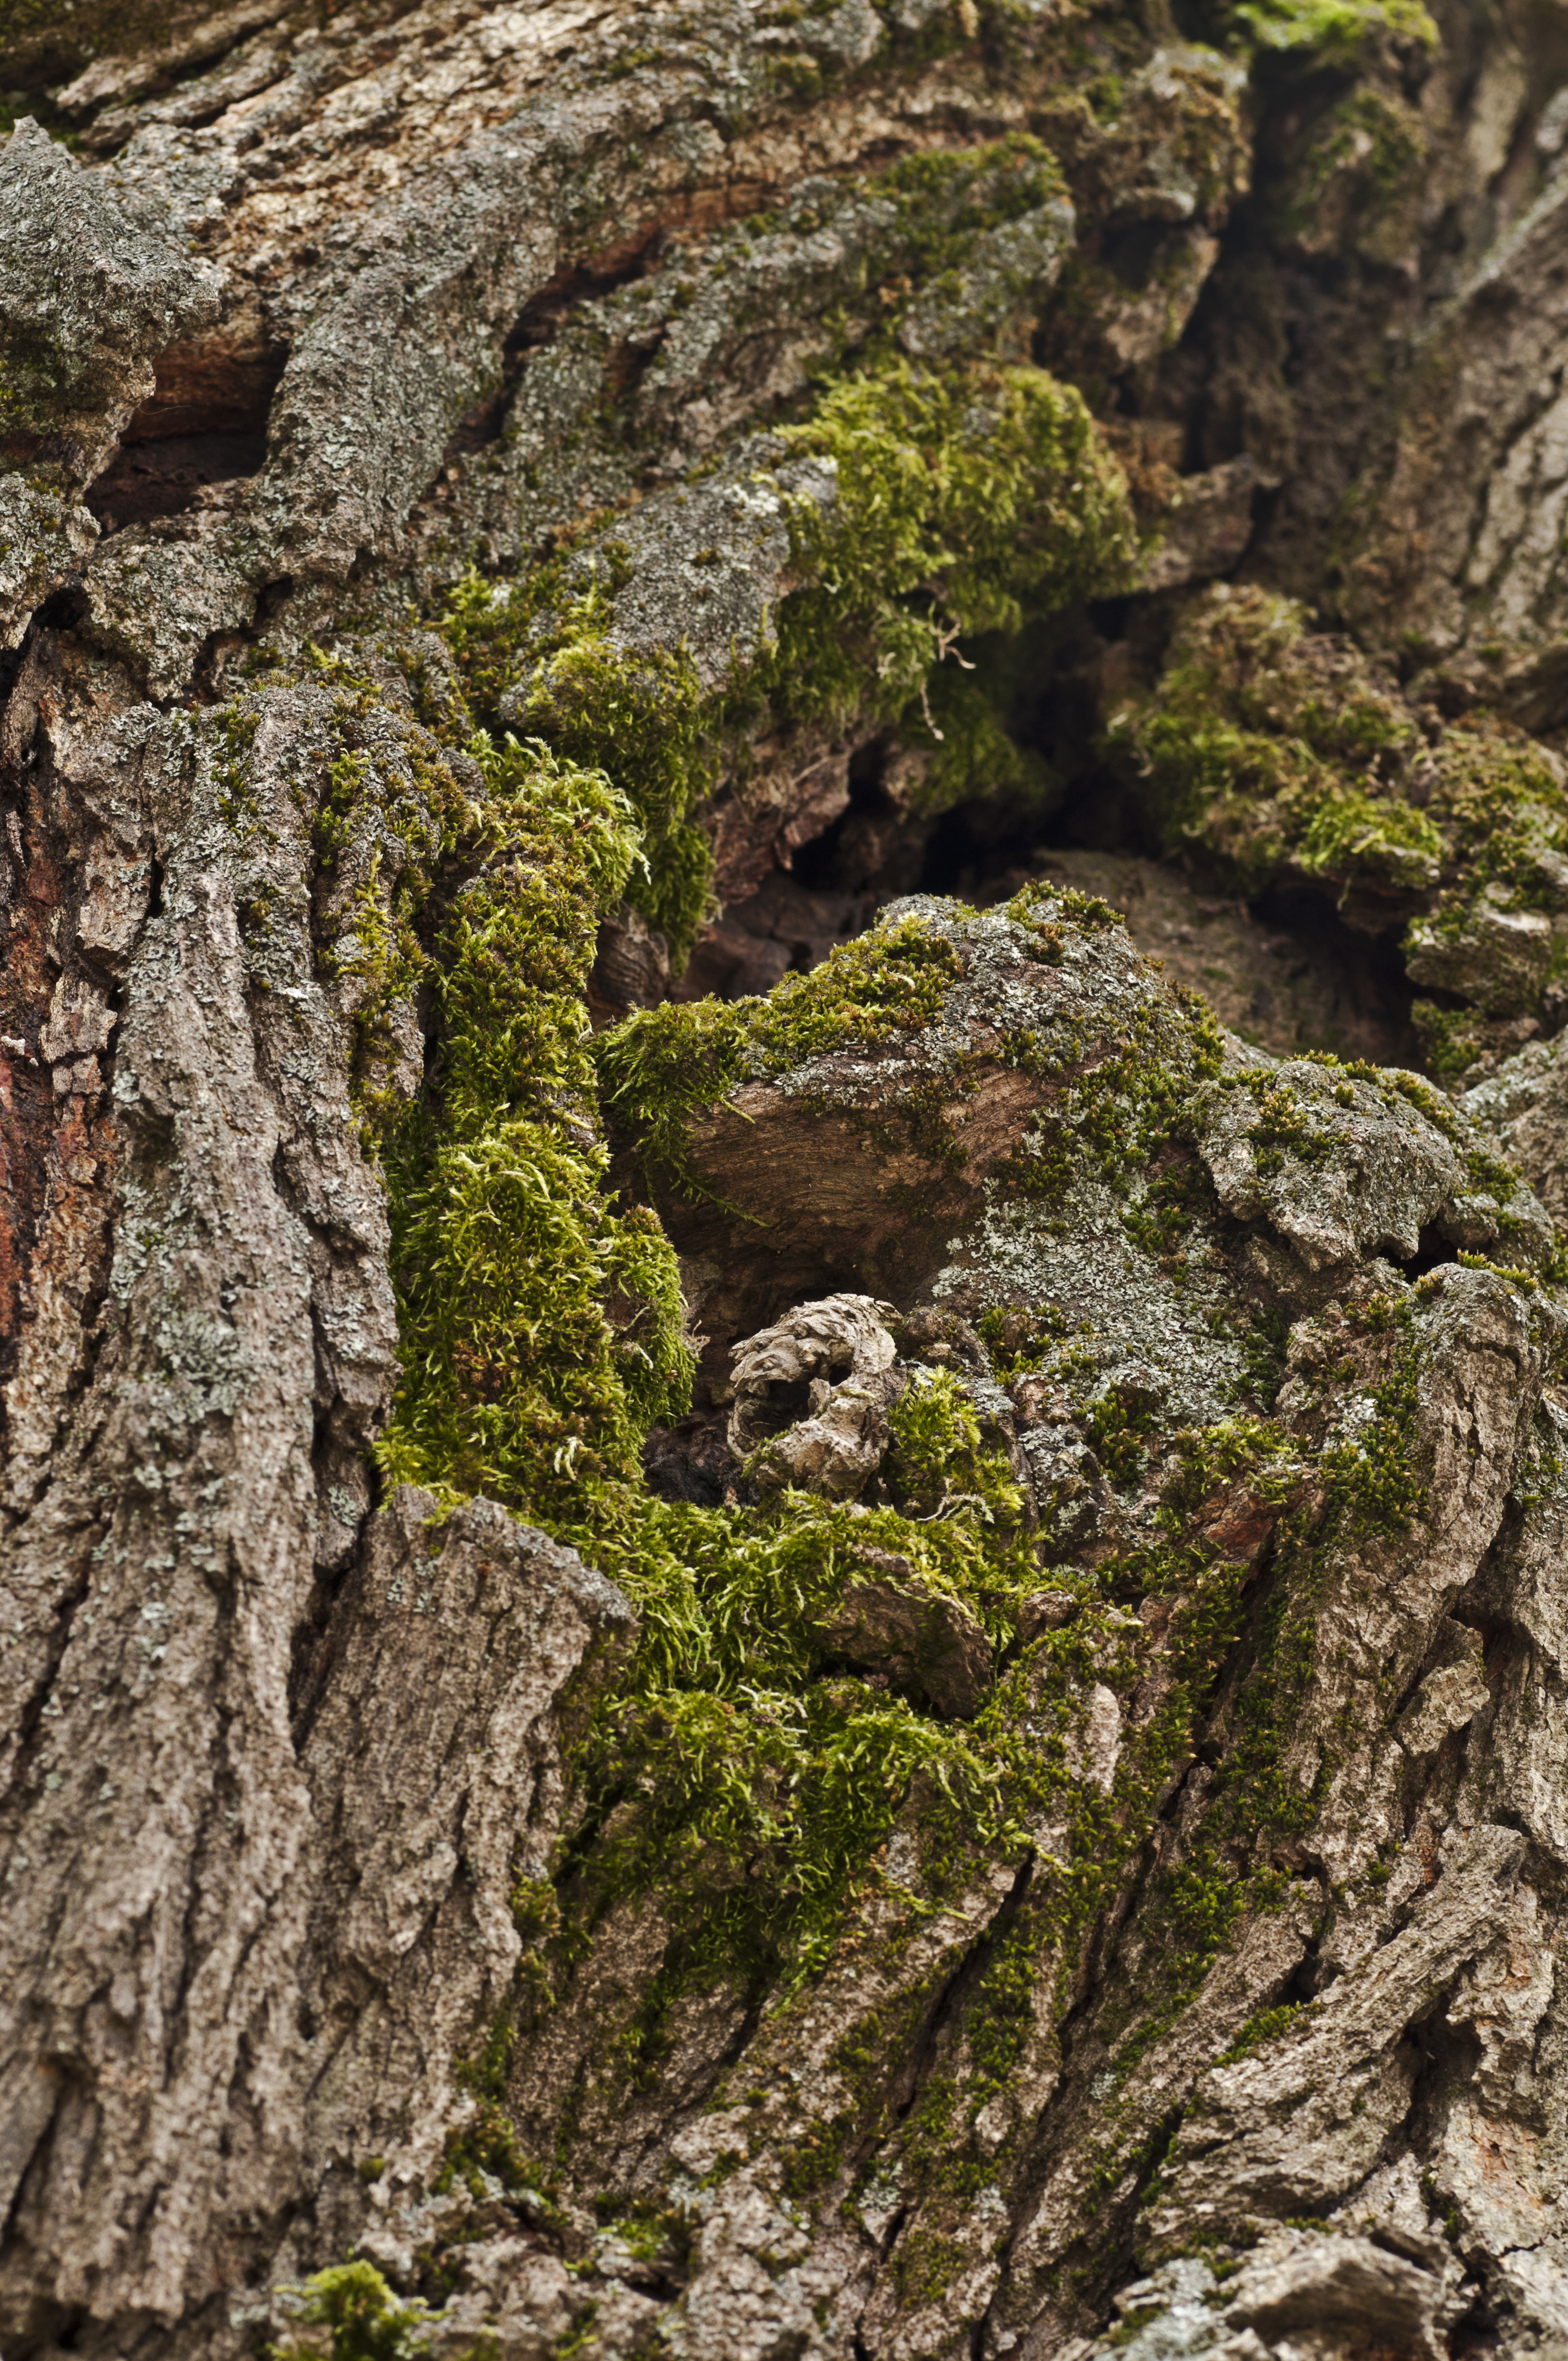 Moss covered old tree 39 s trunk by petertakacs on deviantart for What is a tree trunk covered with 4 letters